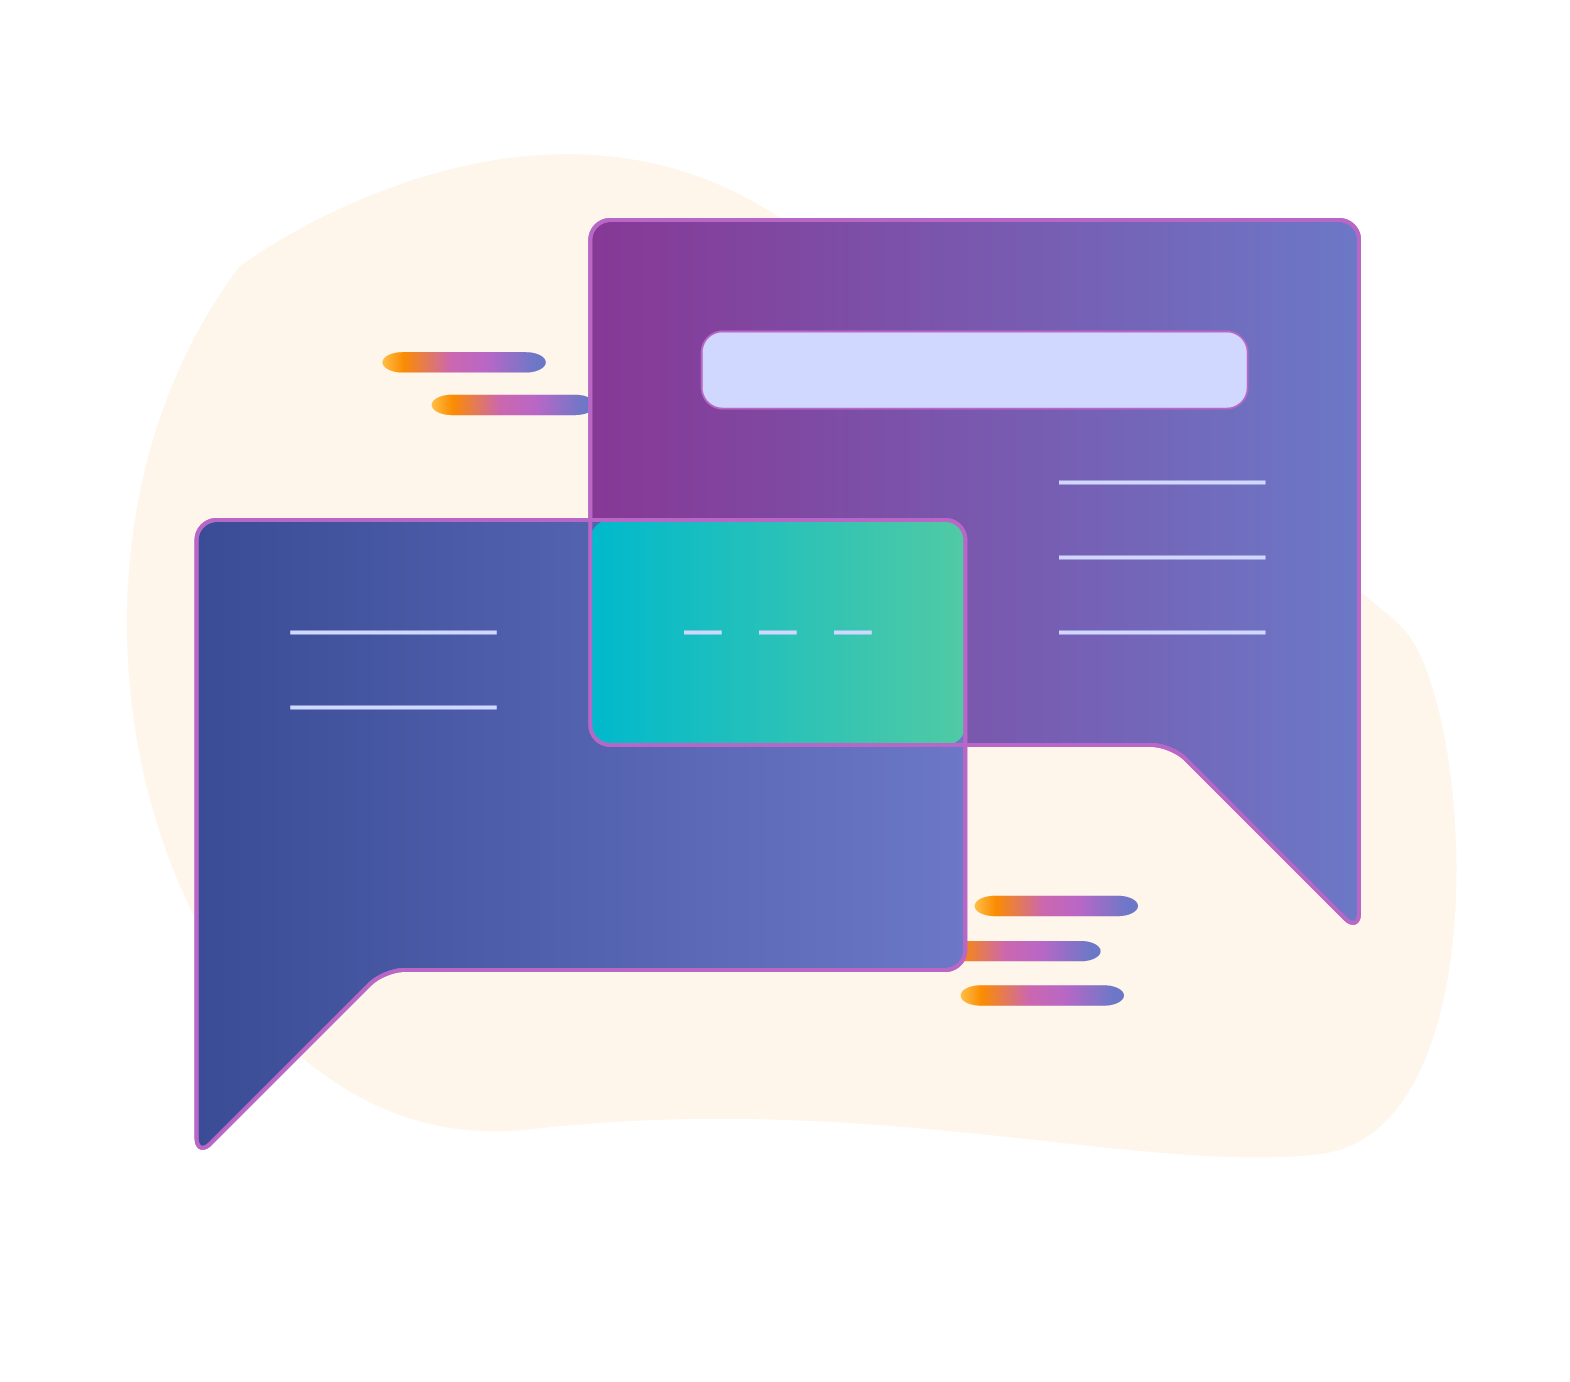 book appointments ANd Communicate with Patients with ease - Schedule therapy sessions and communicate with your patients in real time, all through our HIPAA compliant platform.